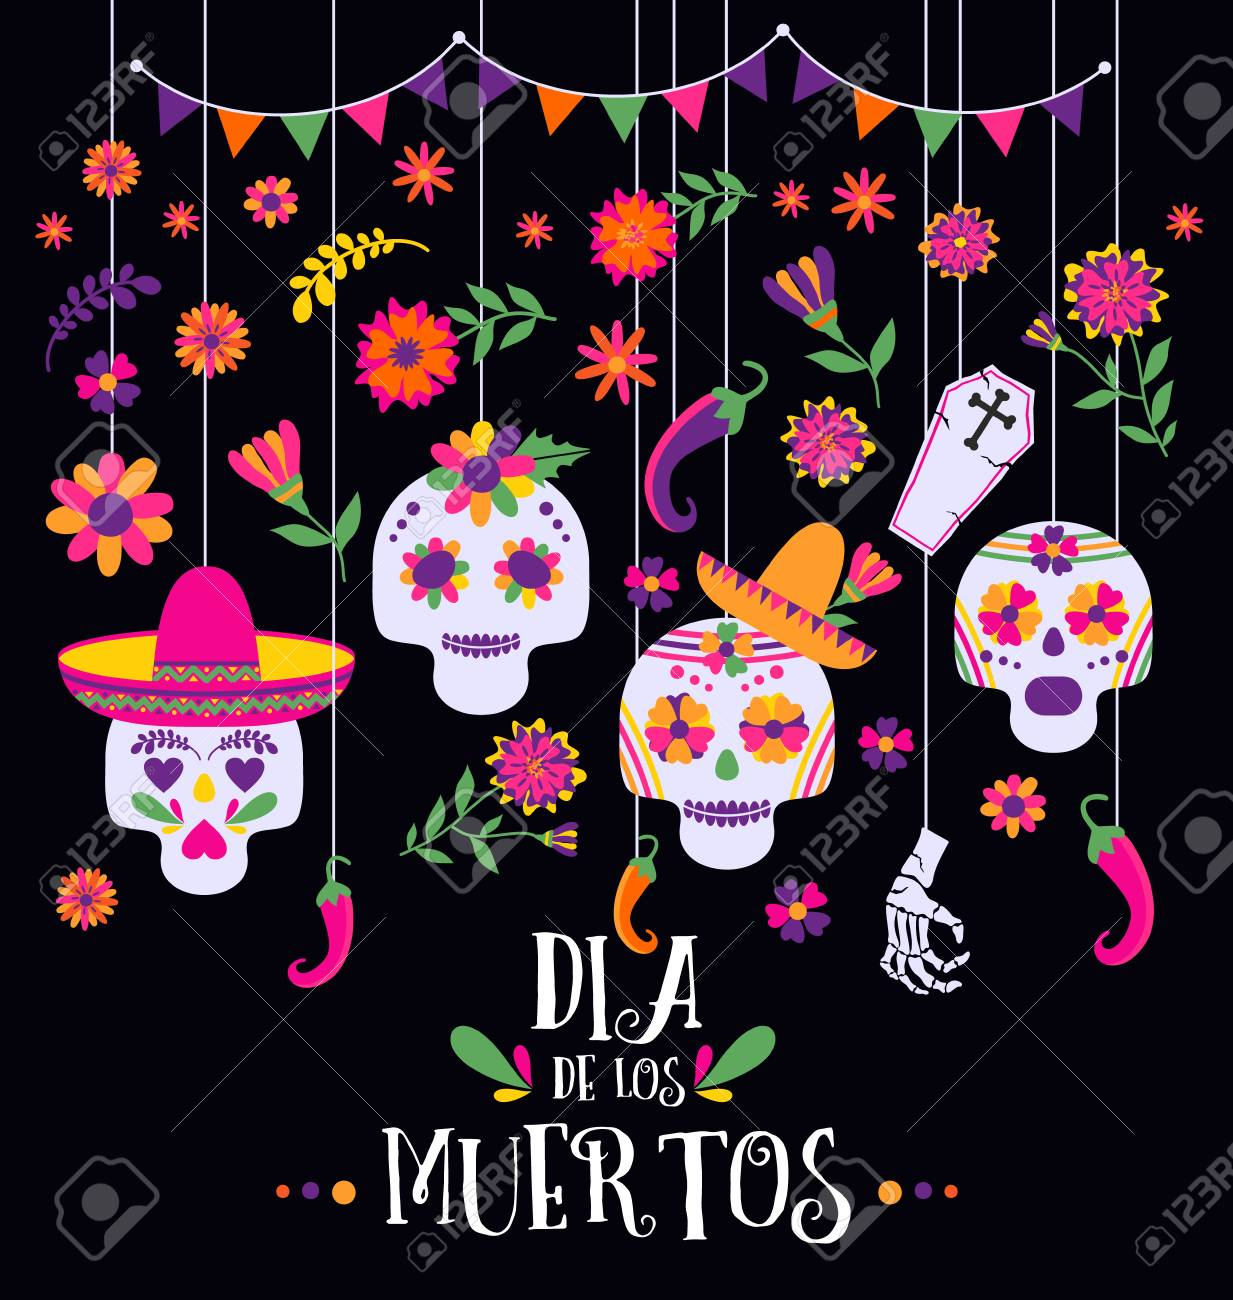 Day Of The Dead Dia De Los Muertos Banner With Colorful Mexican Stock Photo Picture And Royalty Free Image Image 108438214